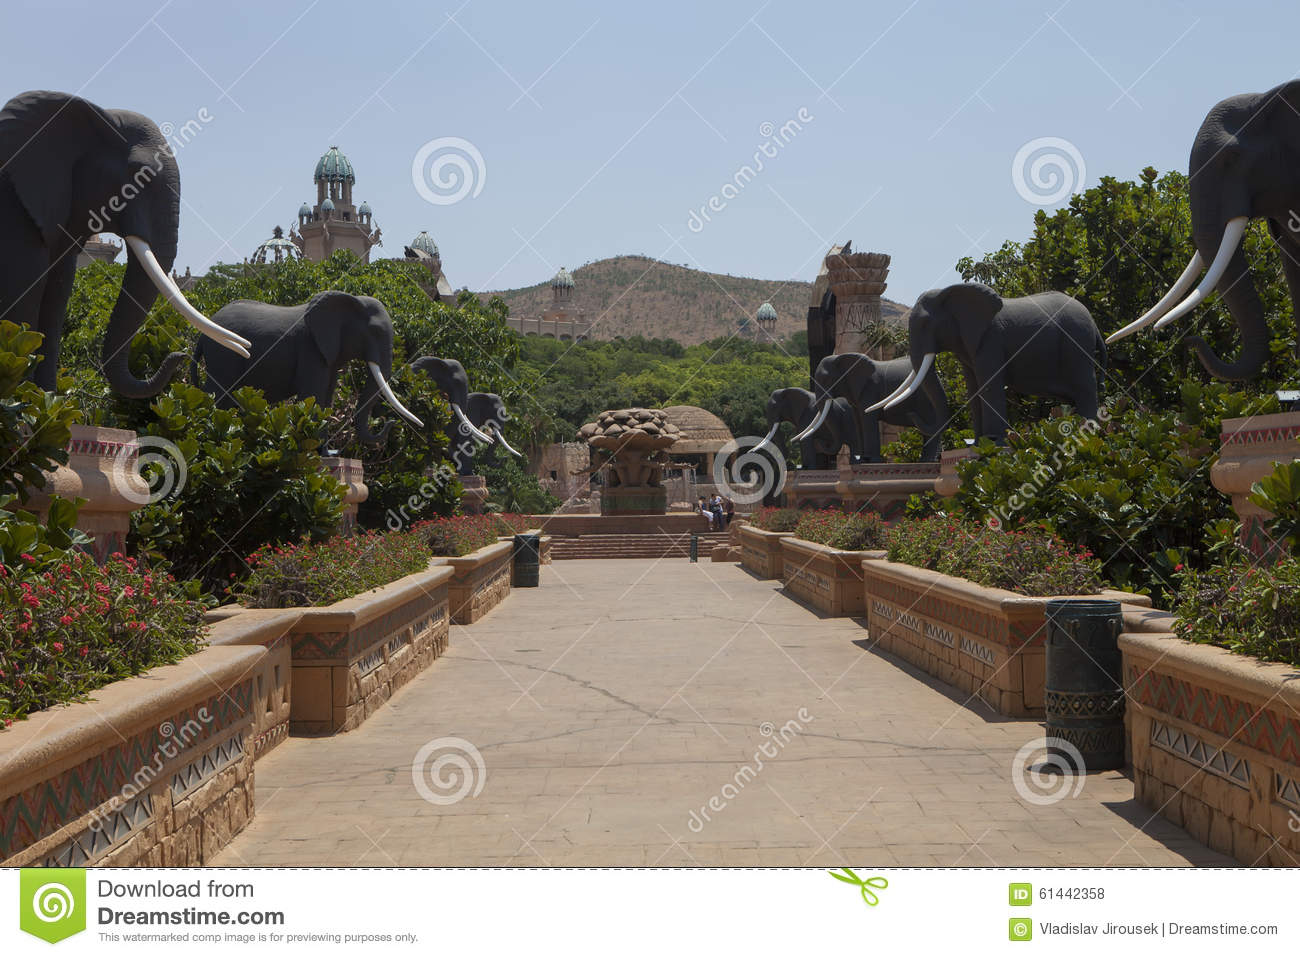 Bridge with statues of elephants, in Sun City, South Africa